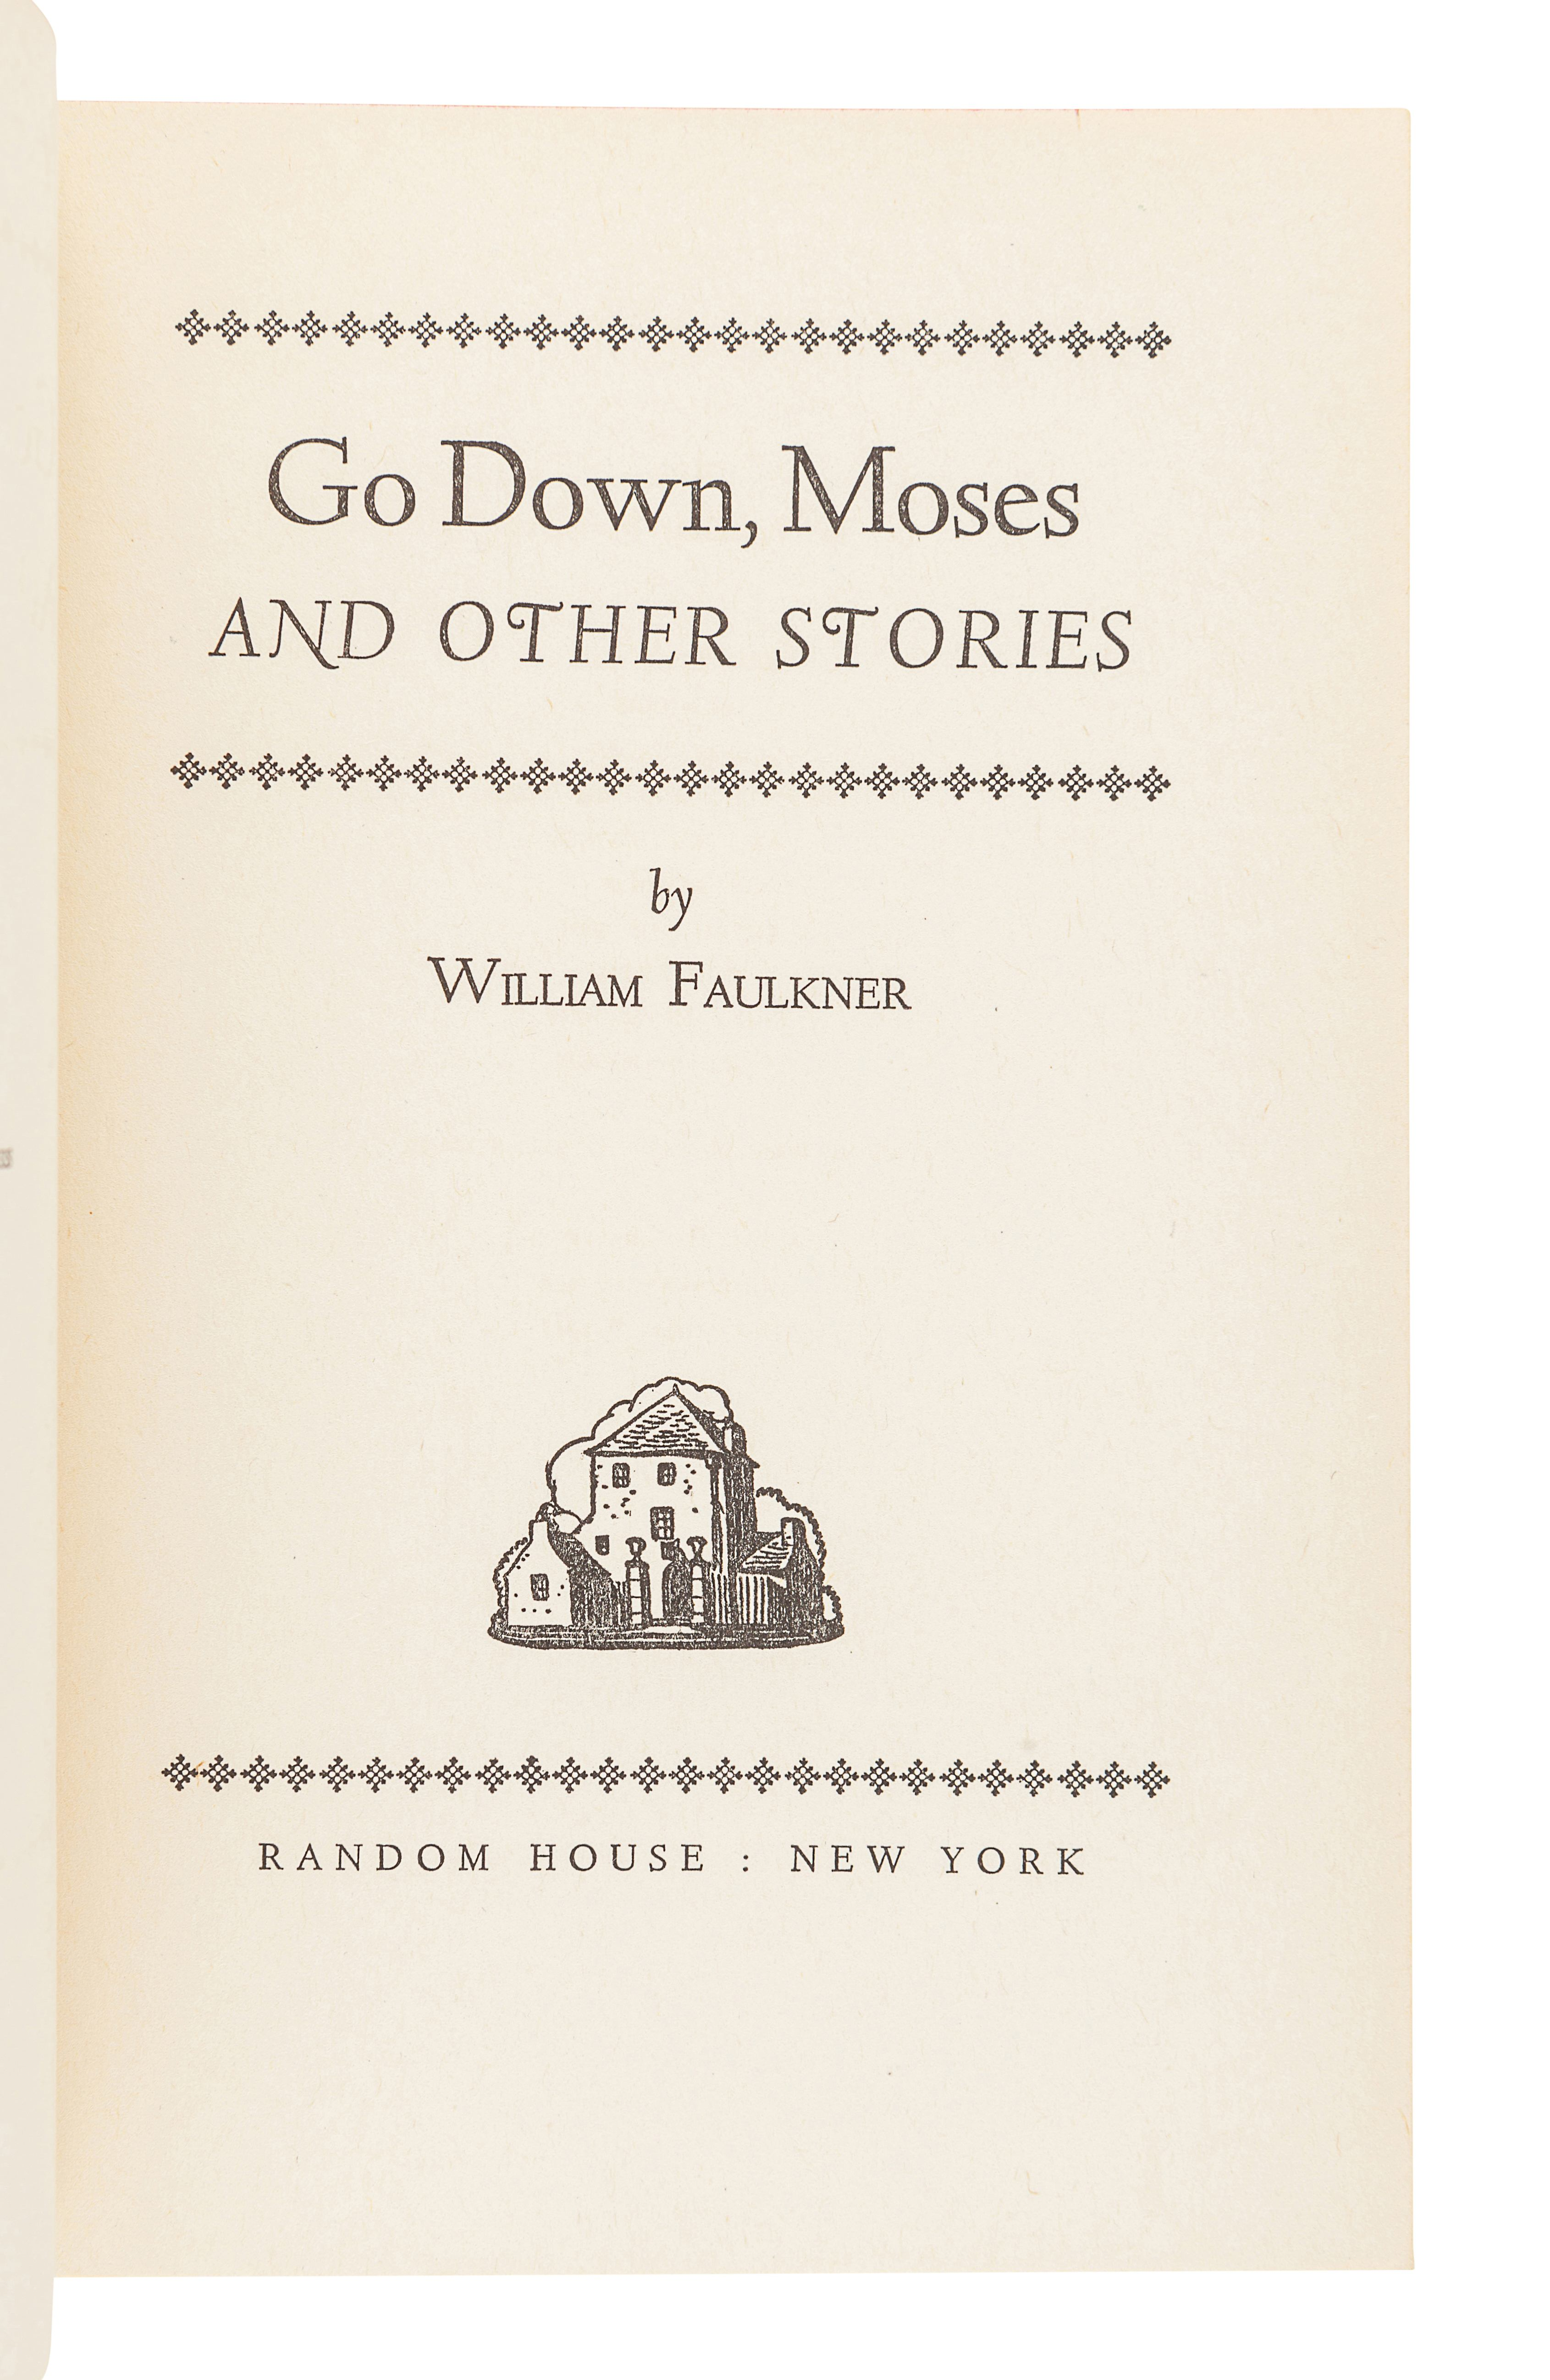 FAULKNER, William (1897-1962). Go Down Moses and Other Stories. New York: Random House, 1942. - Image 2 of 3